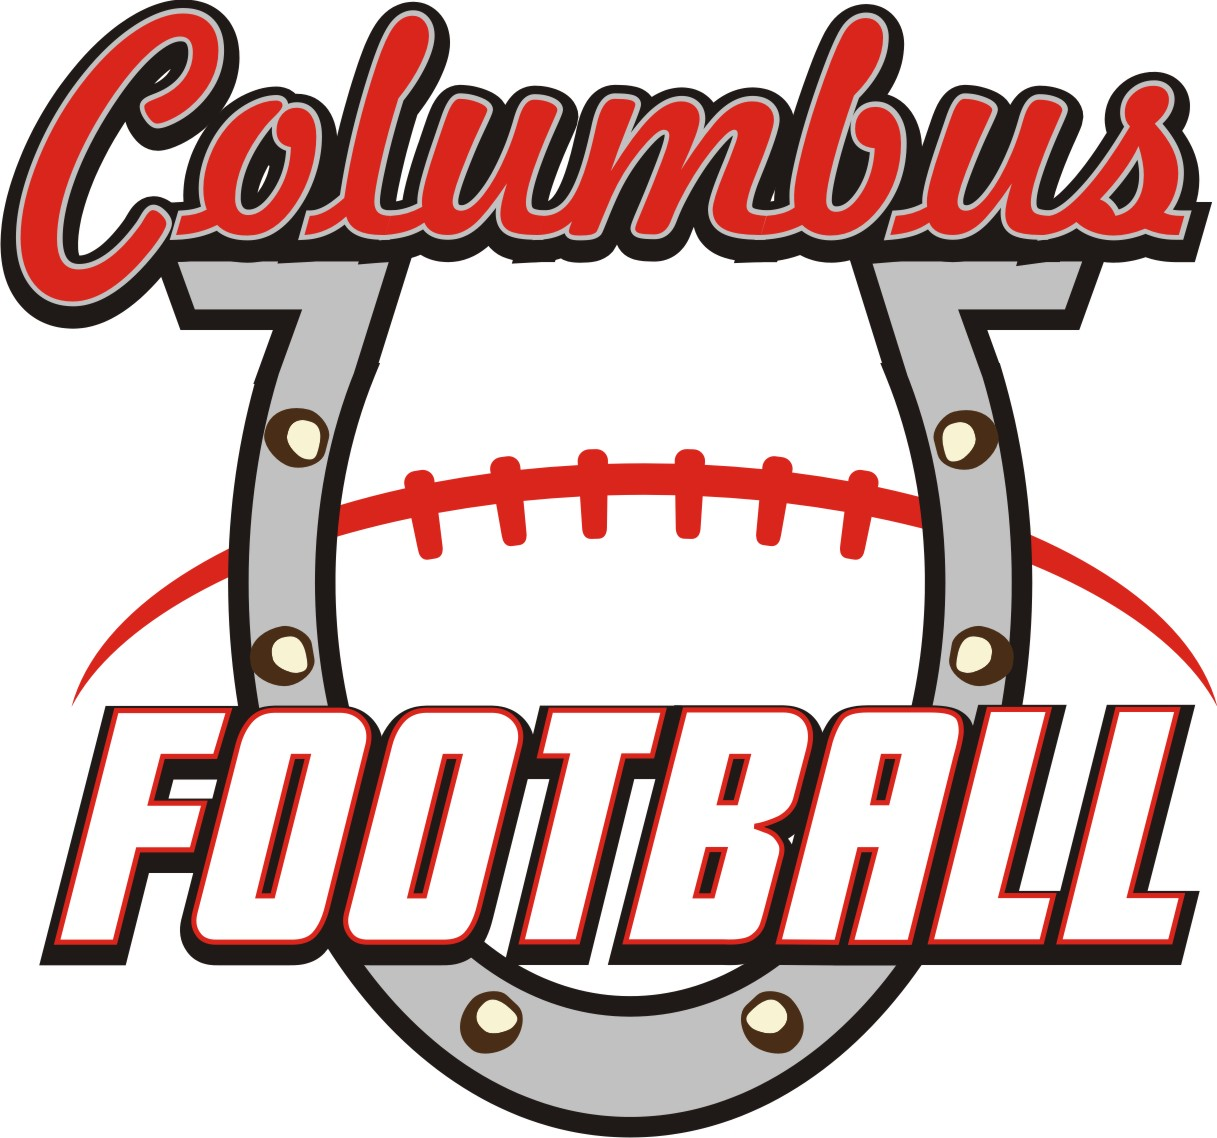 columbus football logo